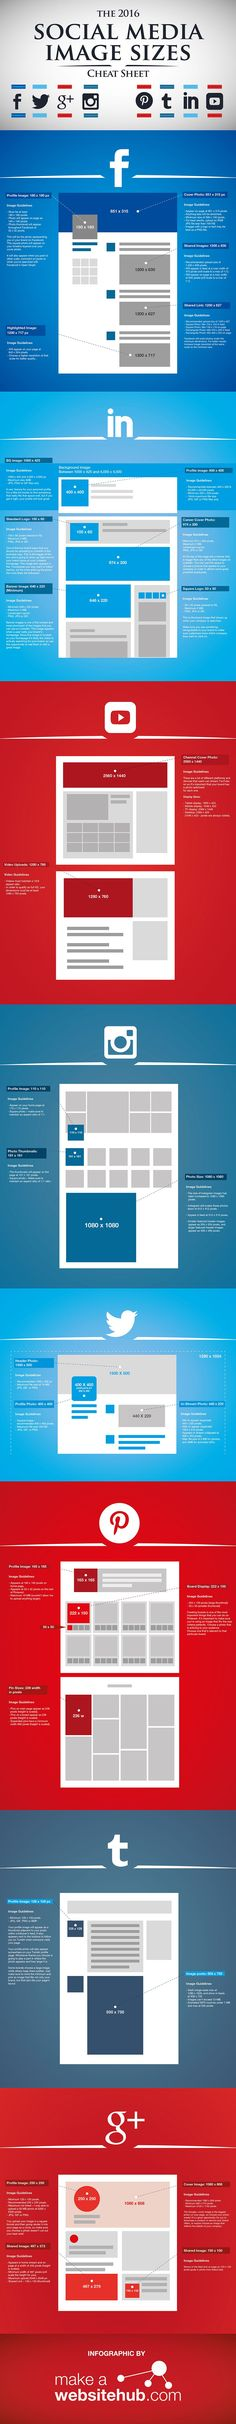 The Ultimate Guide to the Best Social Media Image Sizes (2016)